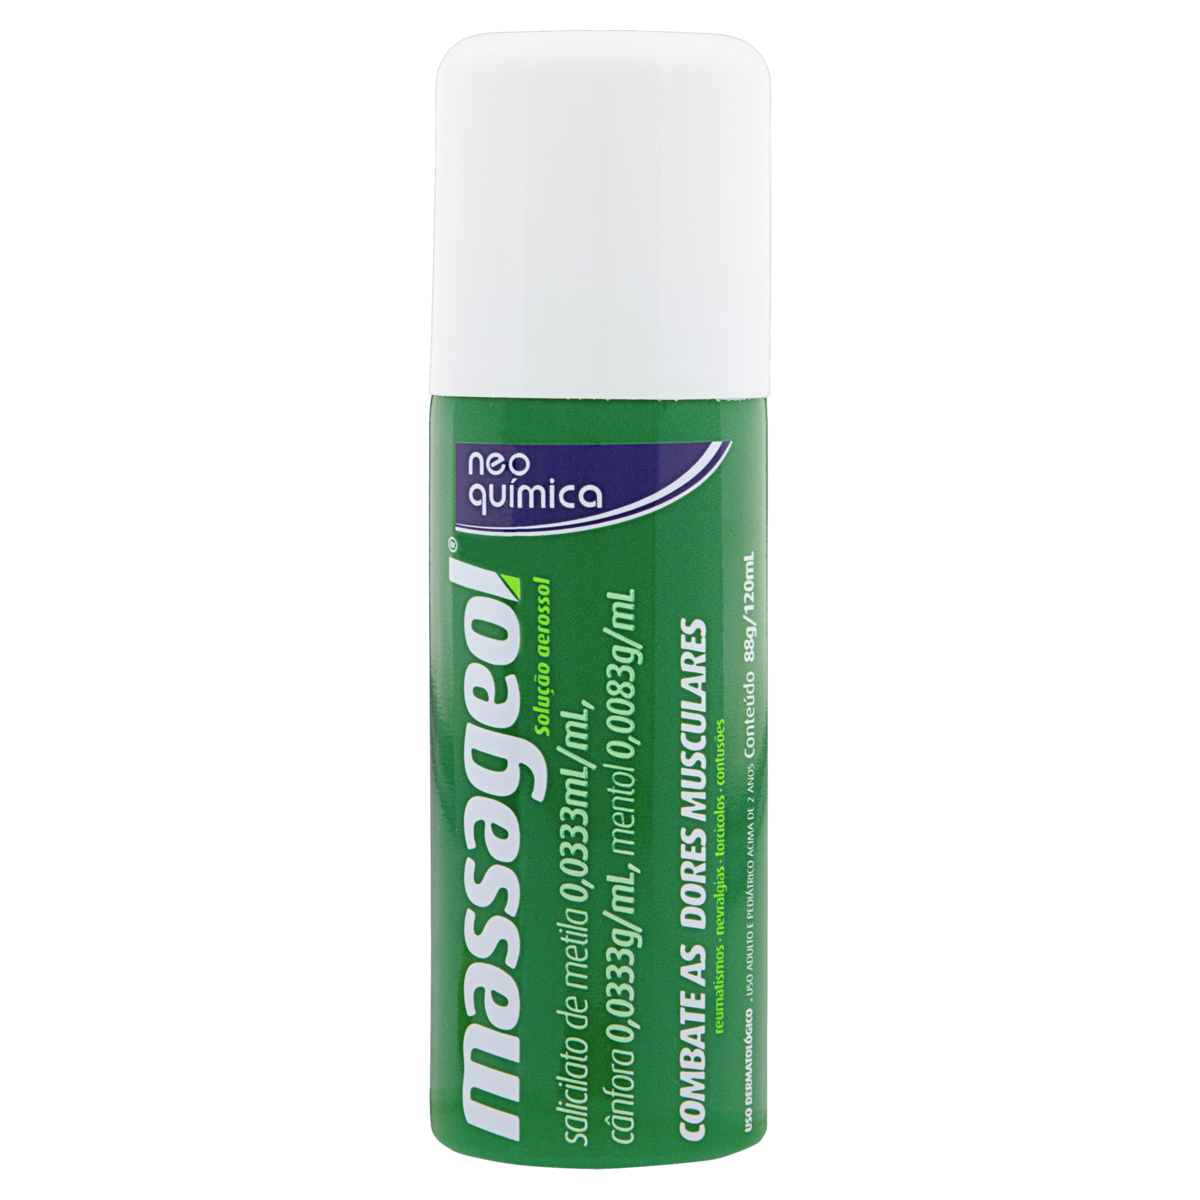 7896714273006 - MASSAGEOL NEO QUÍMICA FRASCO 120ML